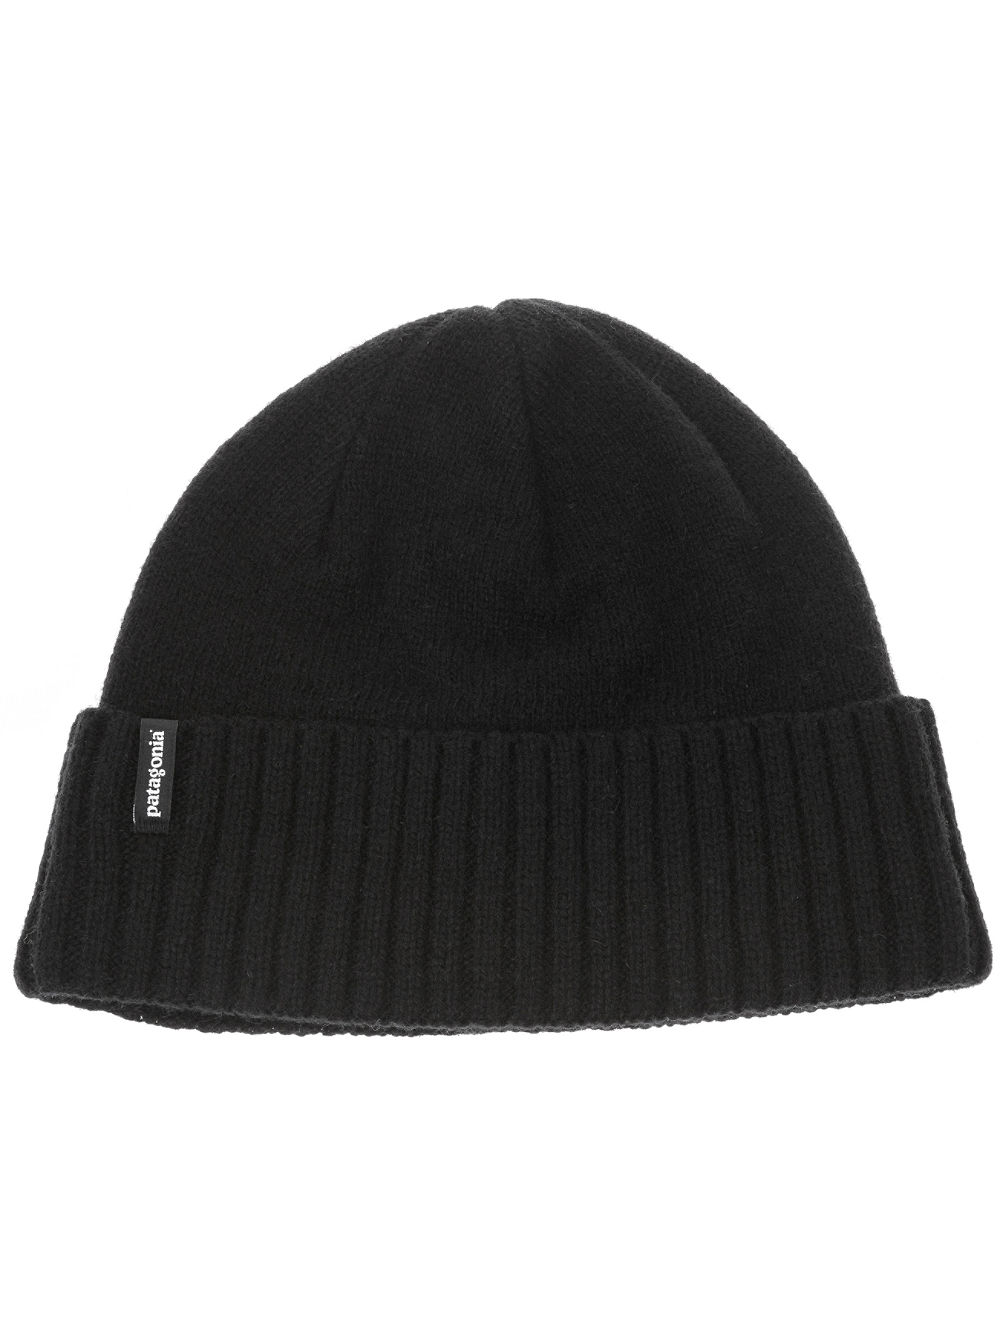 Buy Patagonia Brodeo Beanie online at blue-tomato.com b4f20341866c